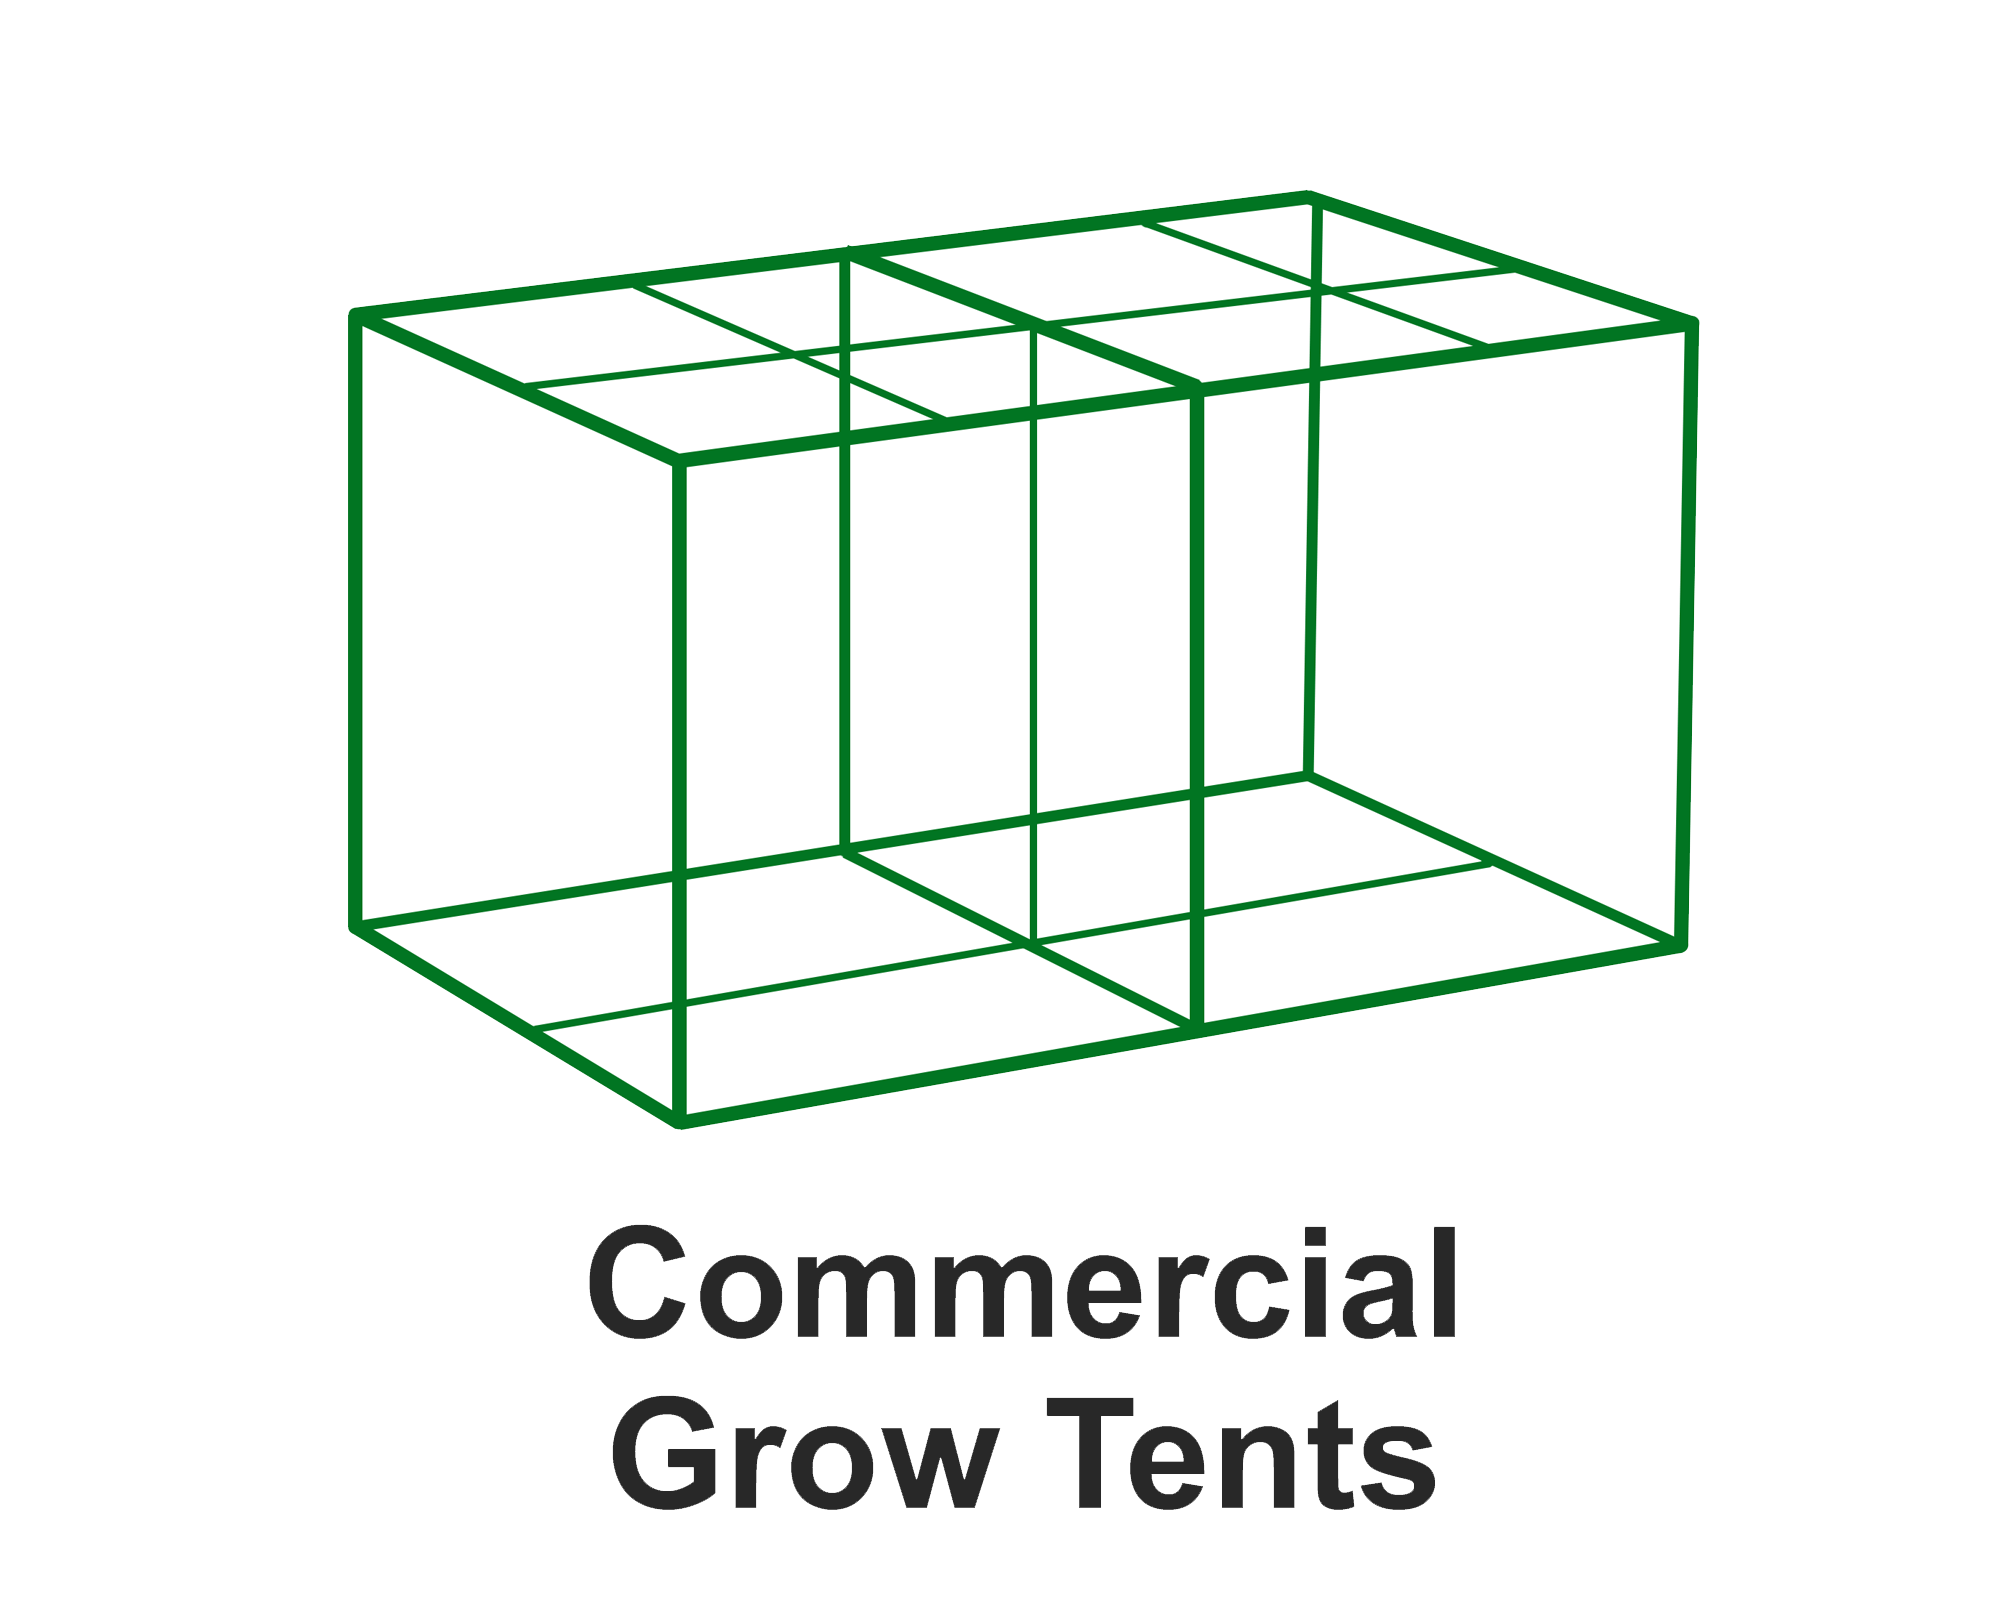 Commercial Grow Tents